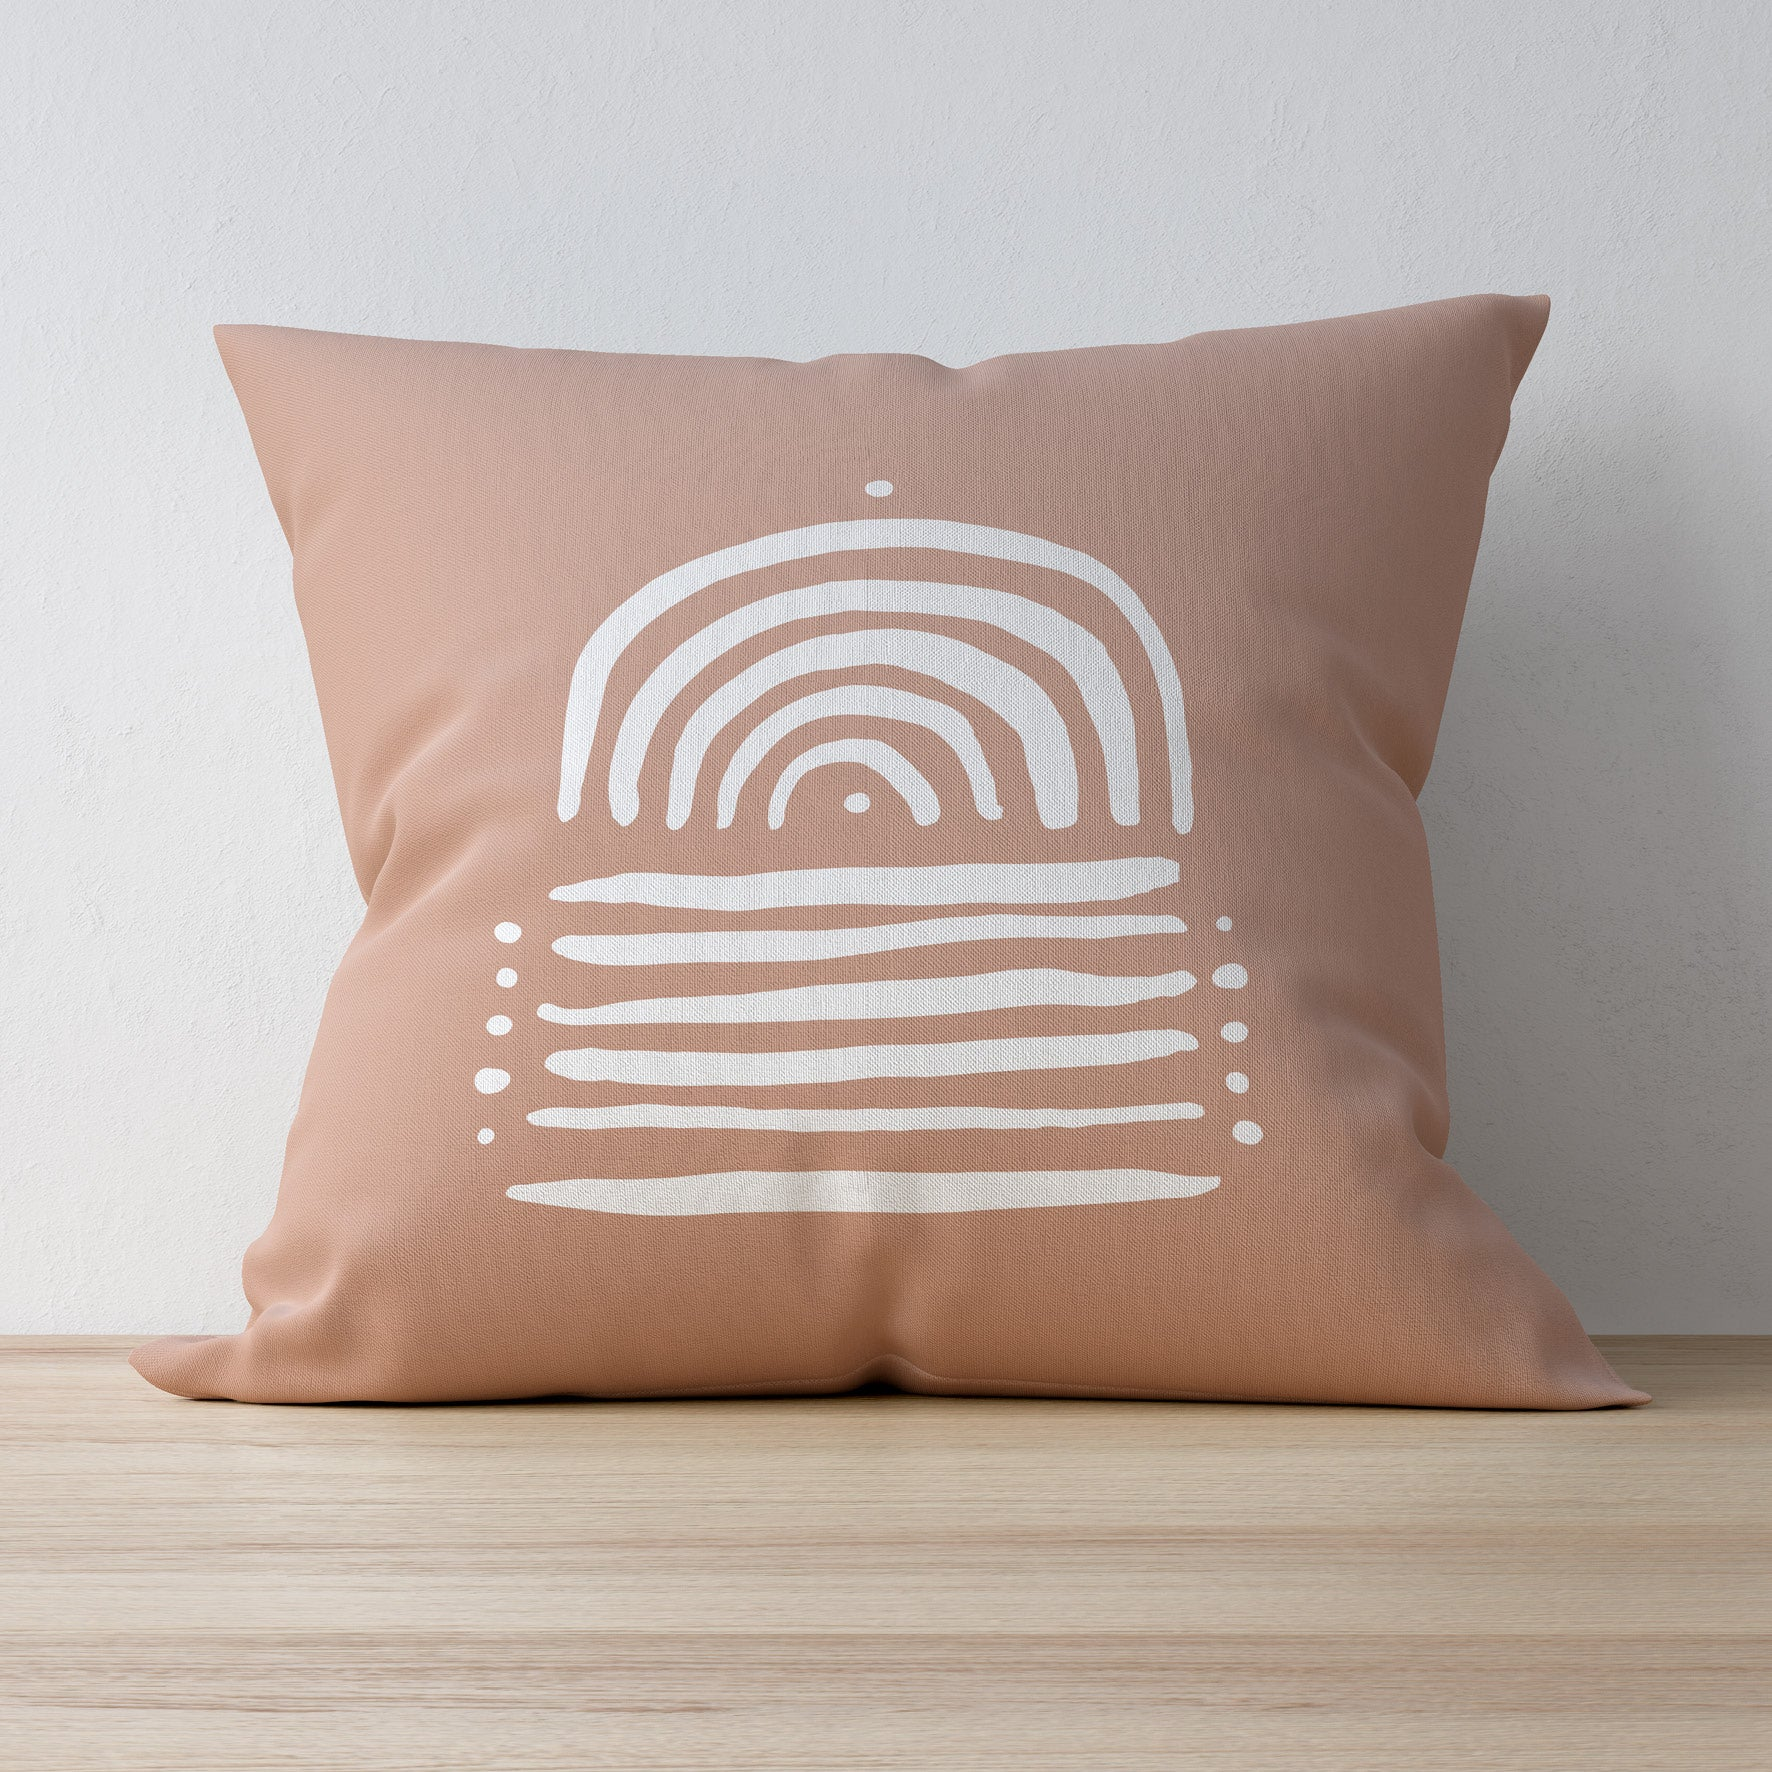 Becks Harrop - Printed White Sand Pillow Case